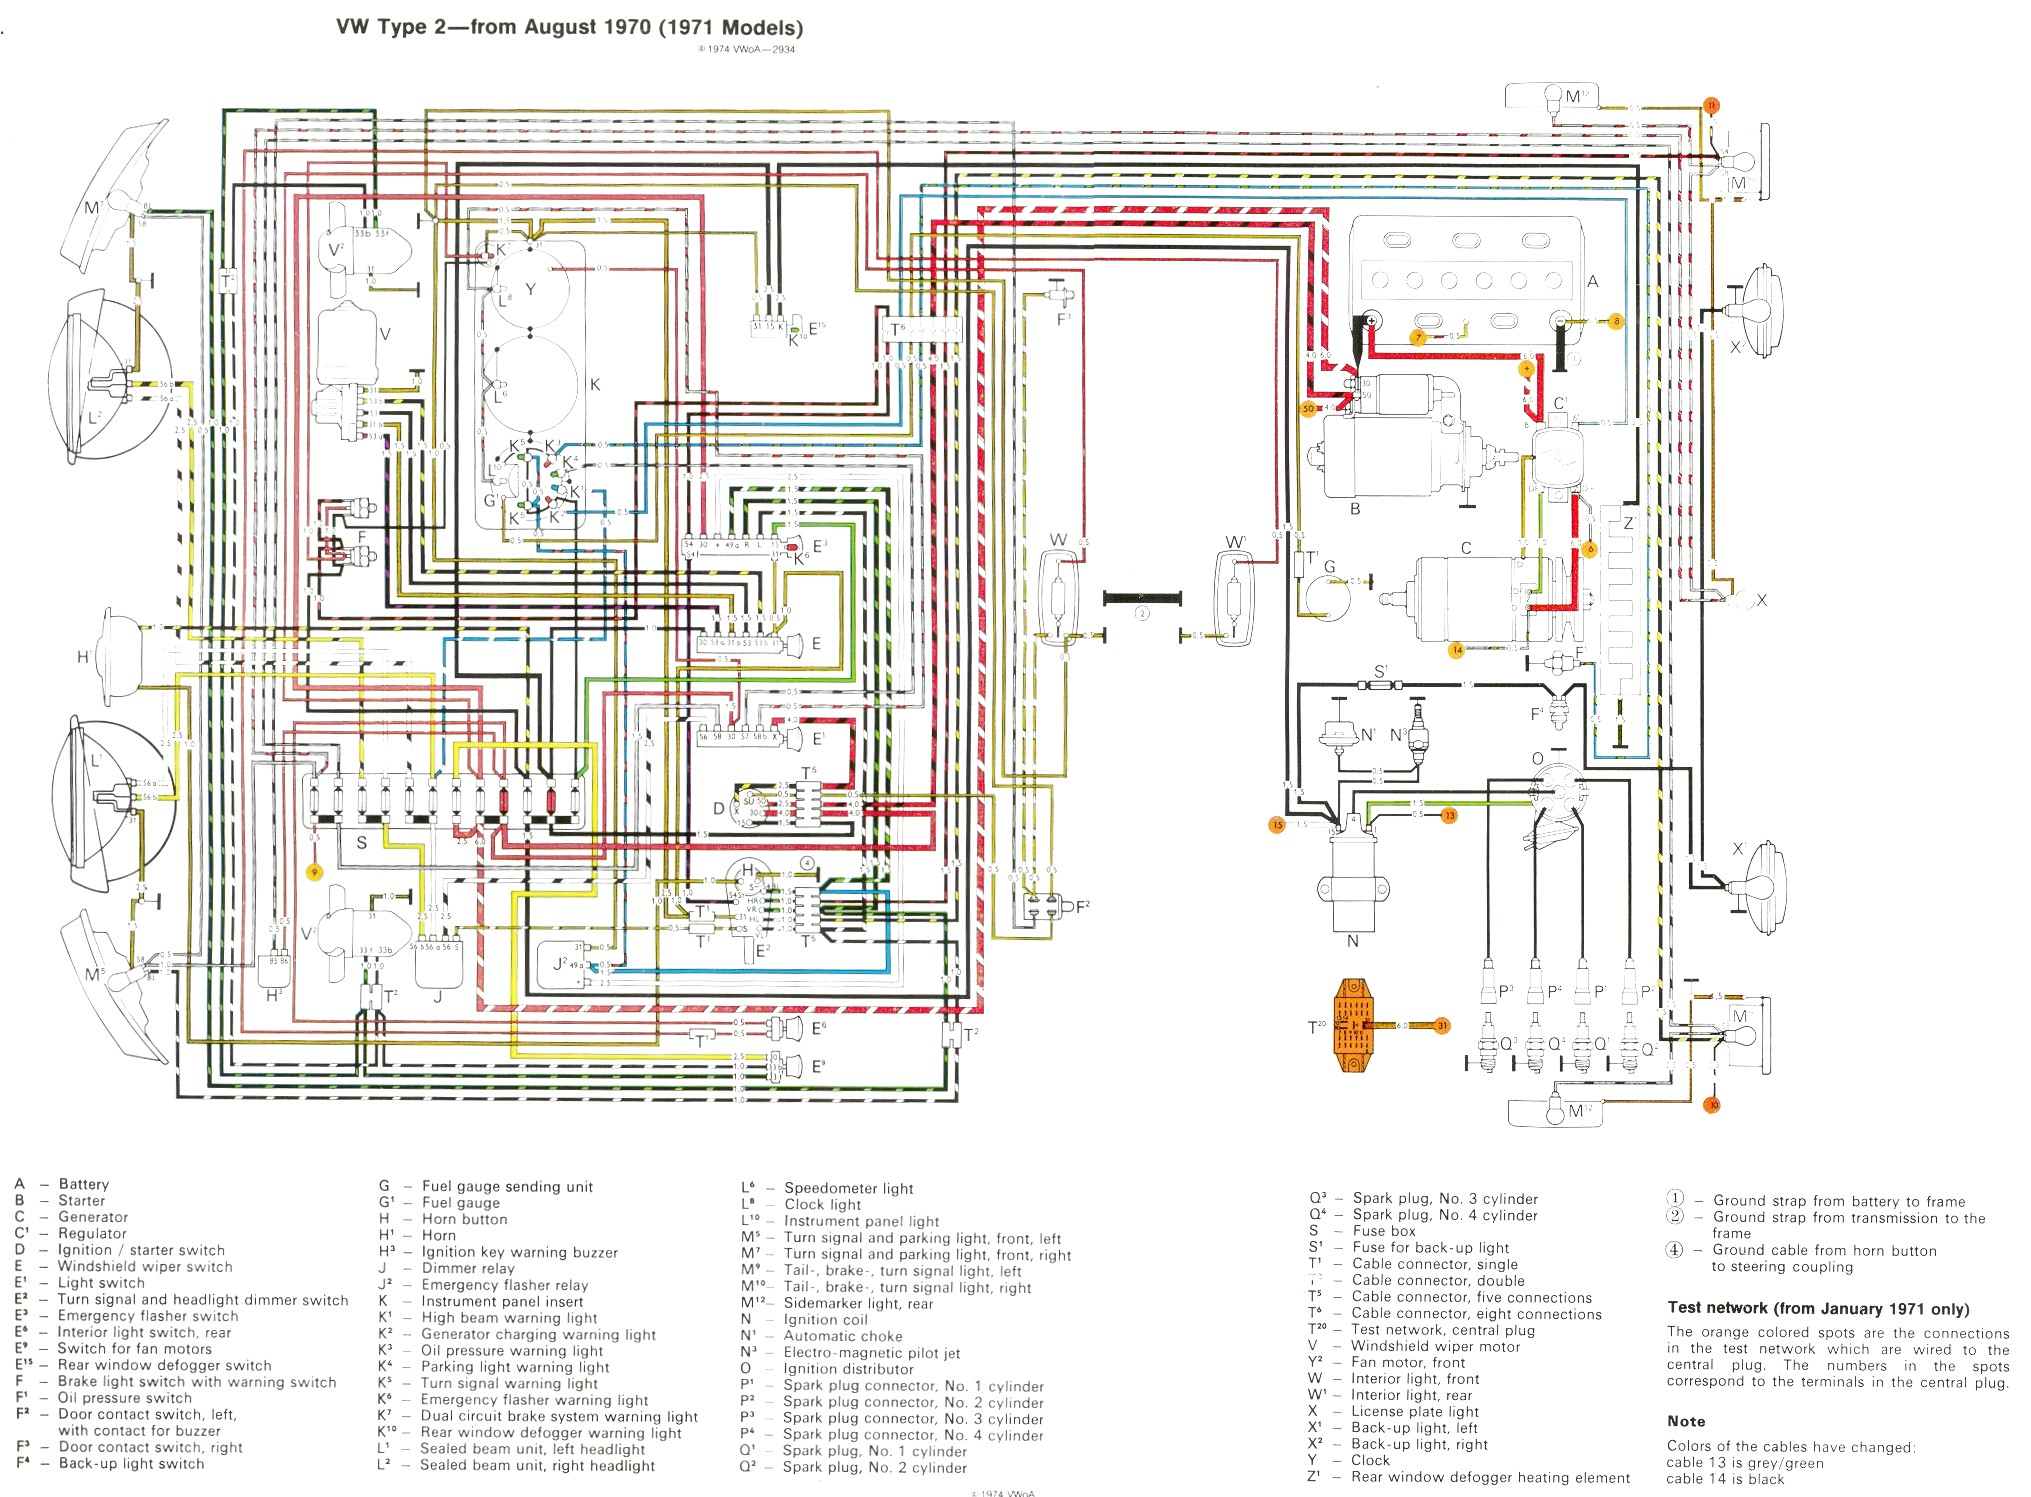 bus 70 71 vintagebus com vw bus (and other) wiring diagrams vw t5 wiring diagram download at panicattacktreatment.co